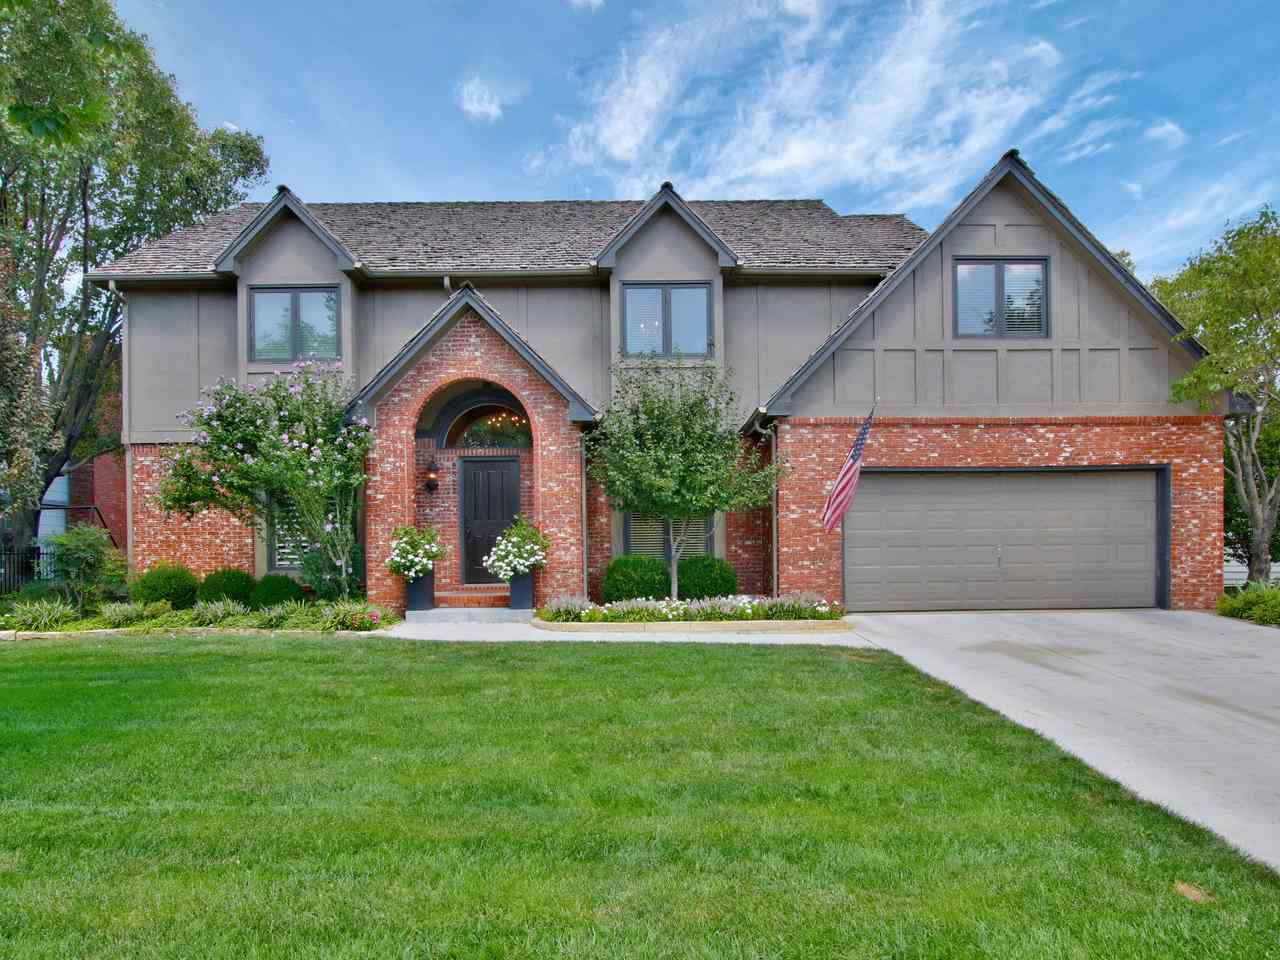 Welcome home to the highly desirable Penstemon neighborhood! This 5-bedroom 4-bath home offers dynam